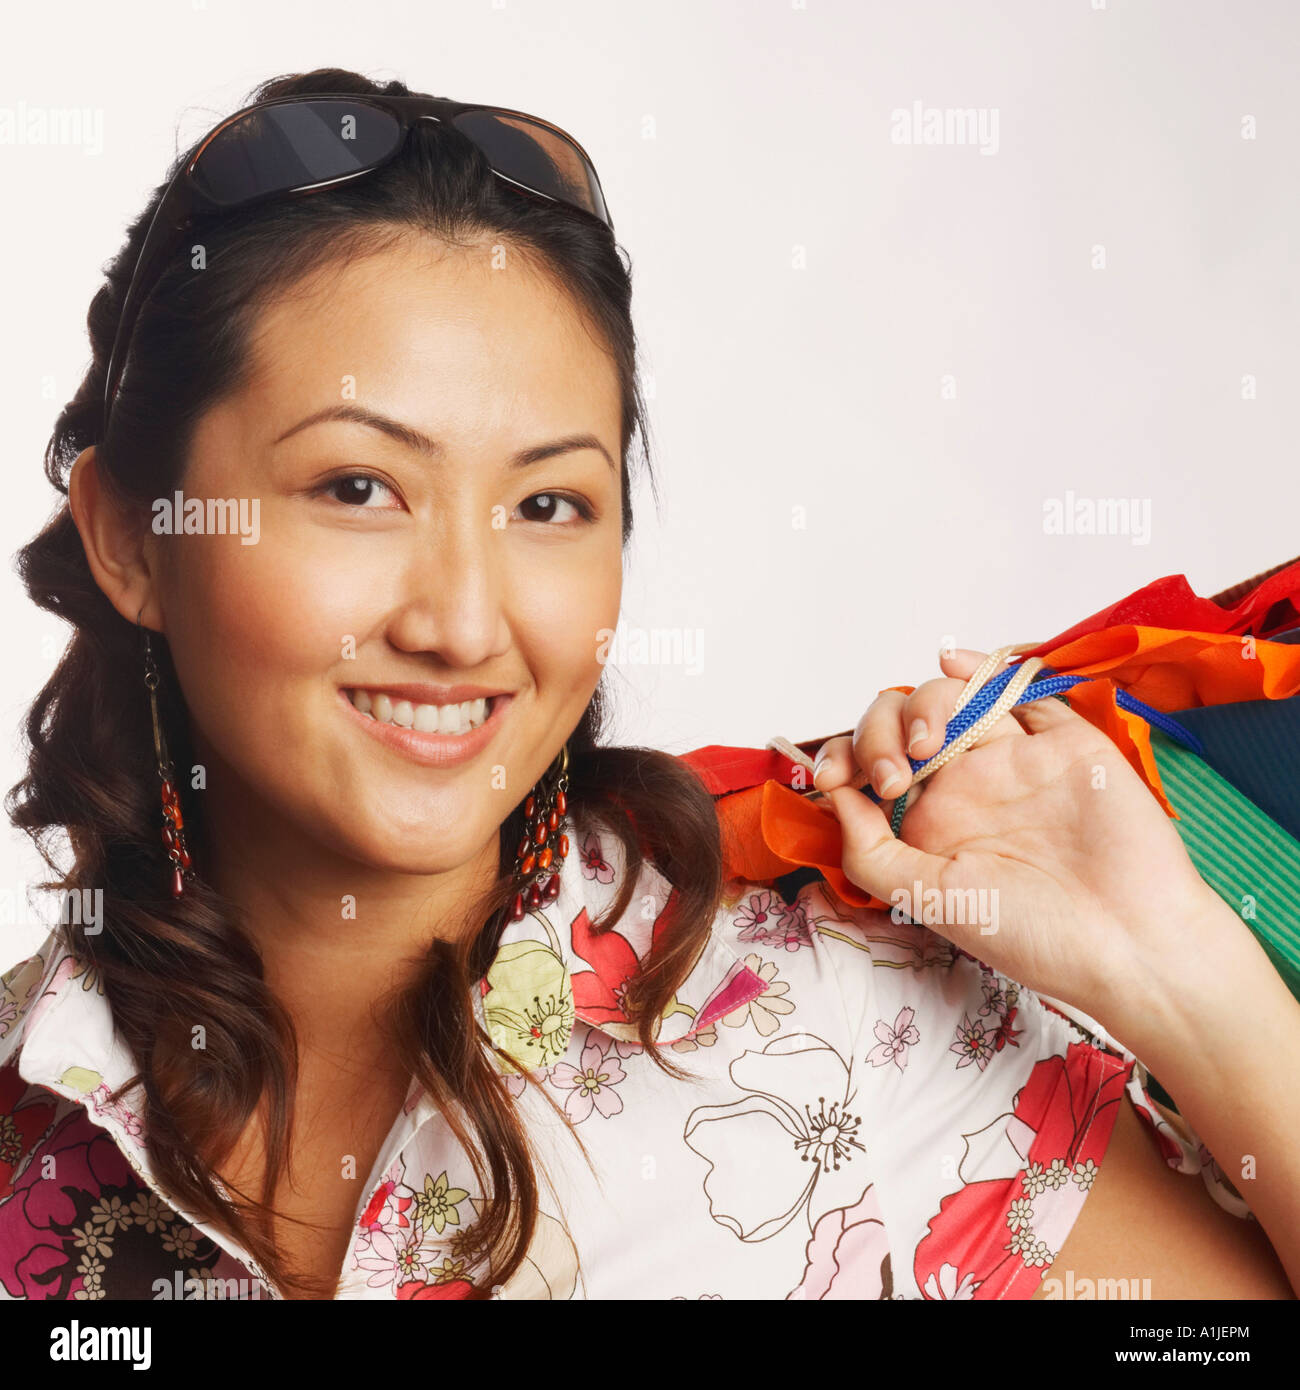 Portrait of a young woman carrying shopping bags and smiling - Stock Image